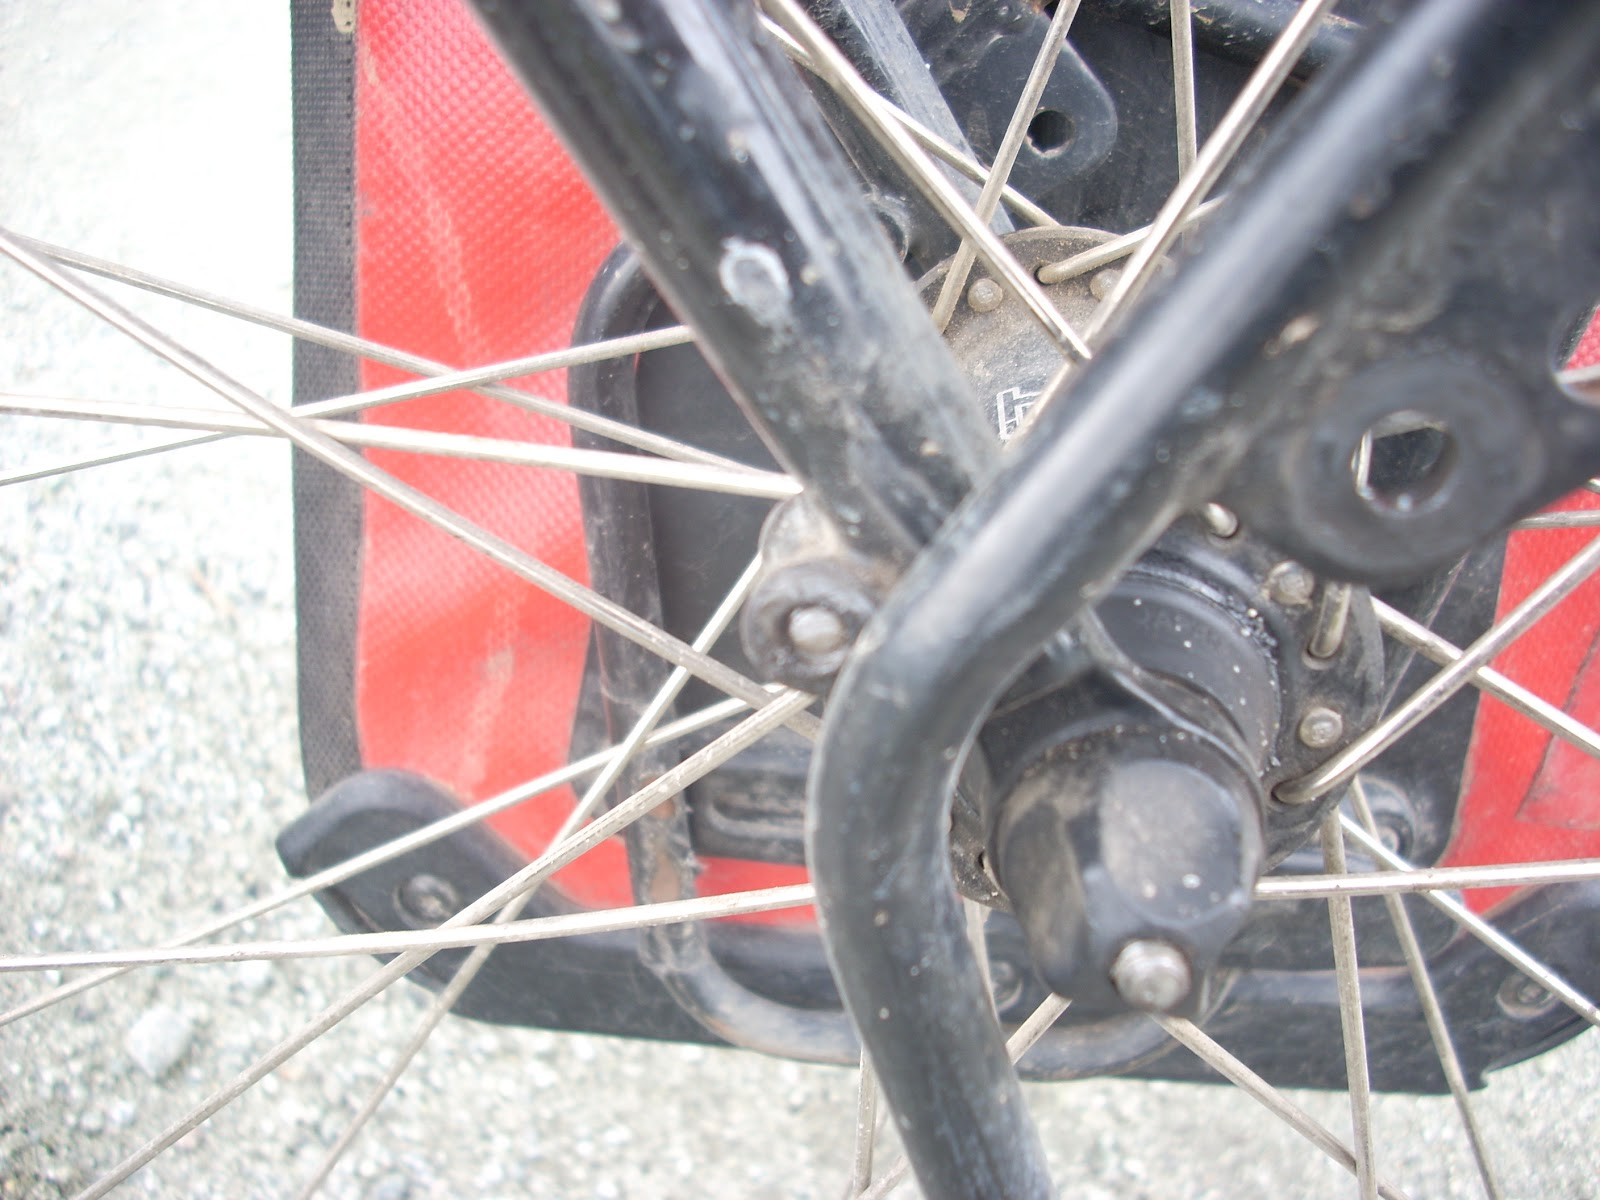 See to the left of the rack, the sheared off bolt?